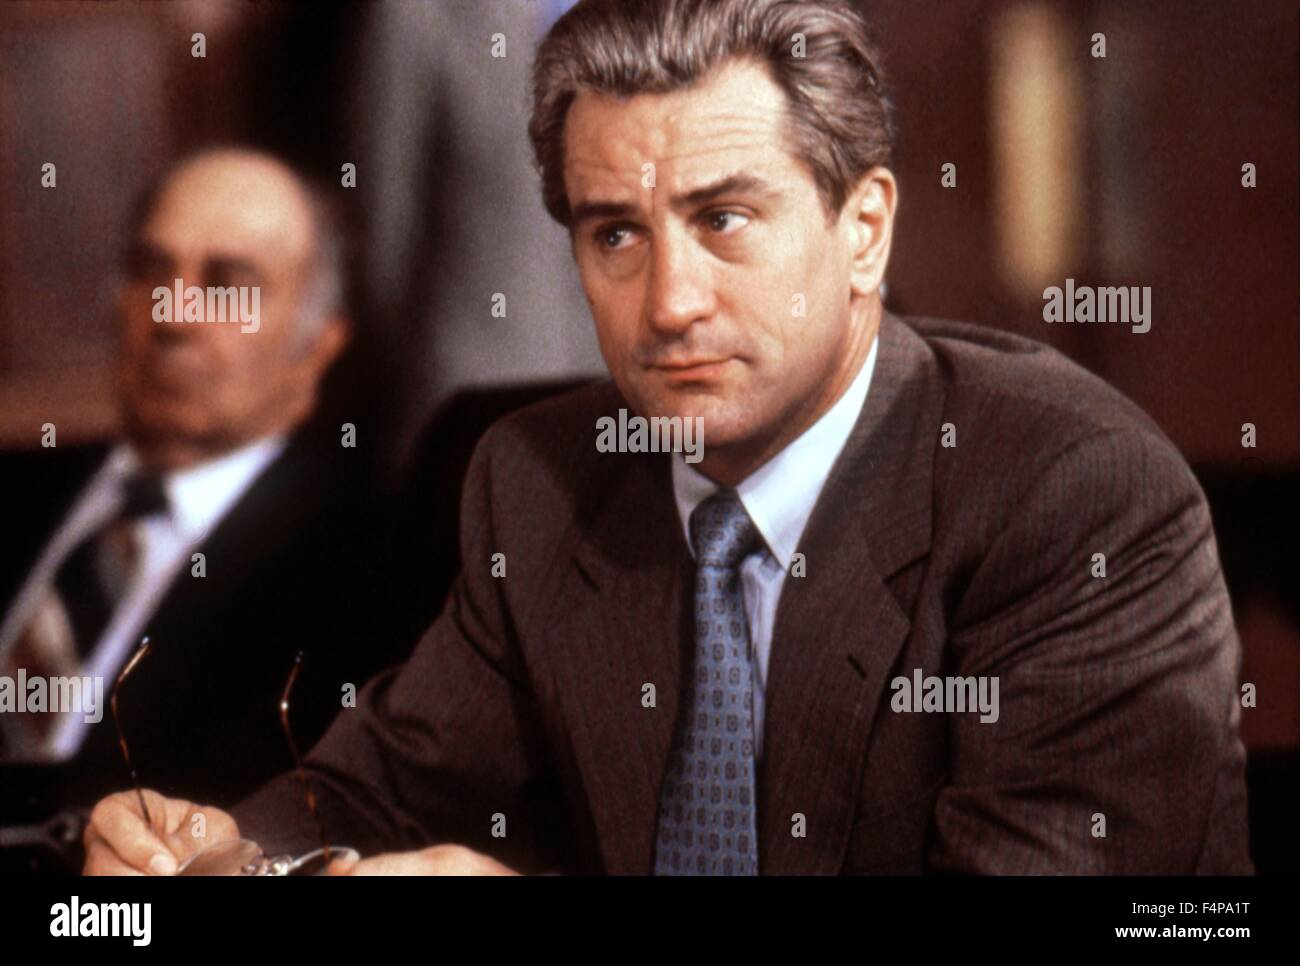 Robert de Niro / Goodfellas 1990 directed by Martin ...